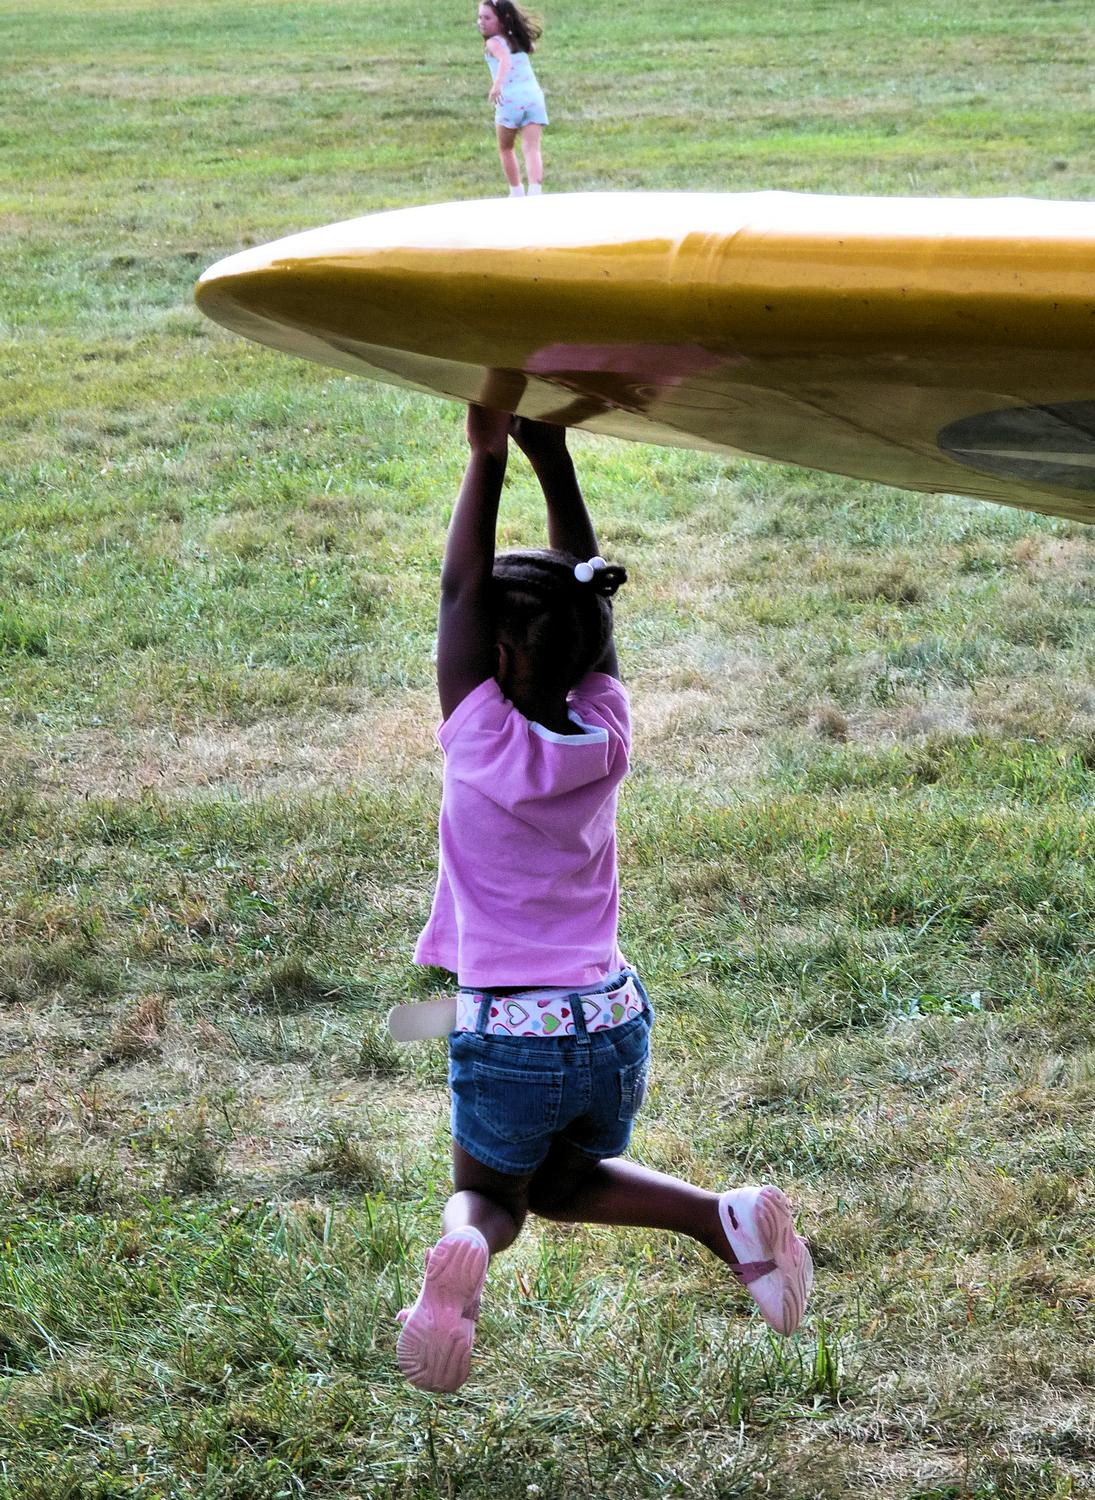 girl hanging from airplane wing - A future wing walker hones her skills. - Panasonic DMC-FZ28 -- At the Flying Circus - Bealton Virginia - Tony Karp, design, art, photography, techno-impressionist, techno-impressionism, aerial photography , drone , drones , dji , mavic pro , video , 3D printing - Books -